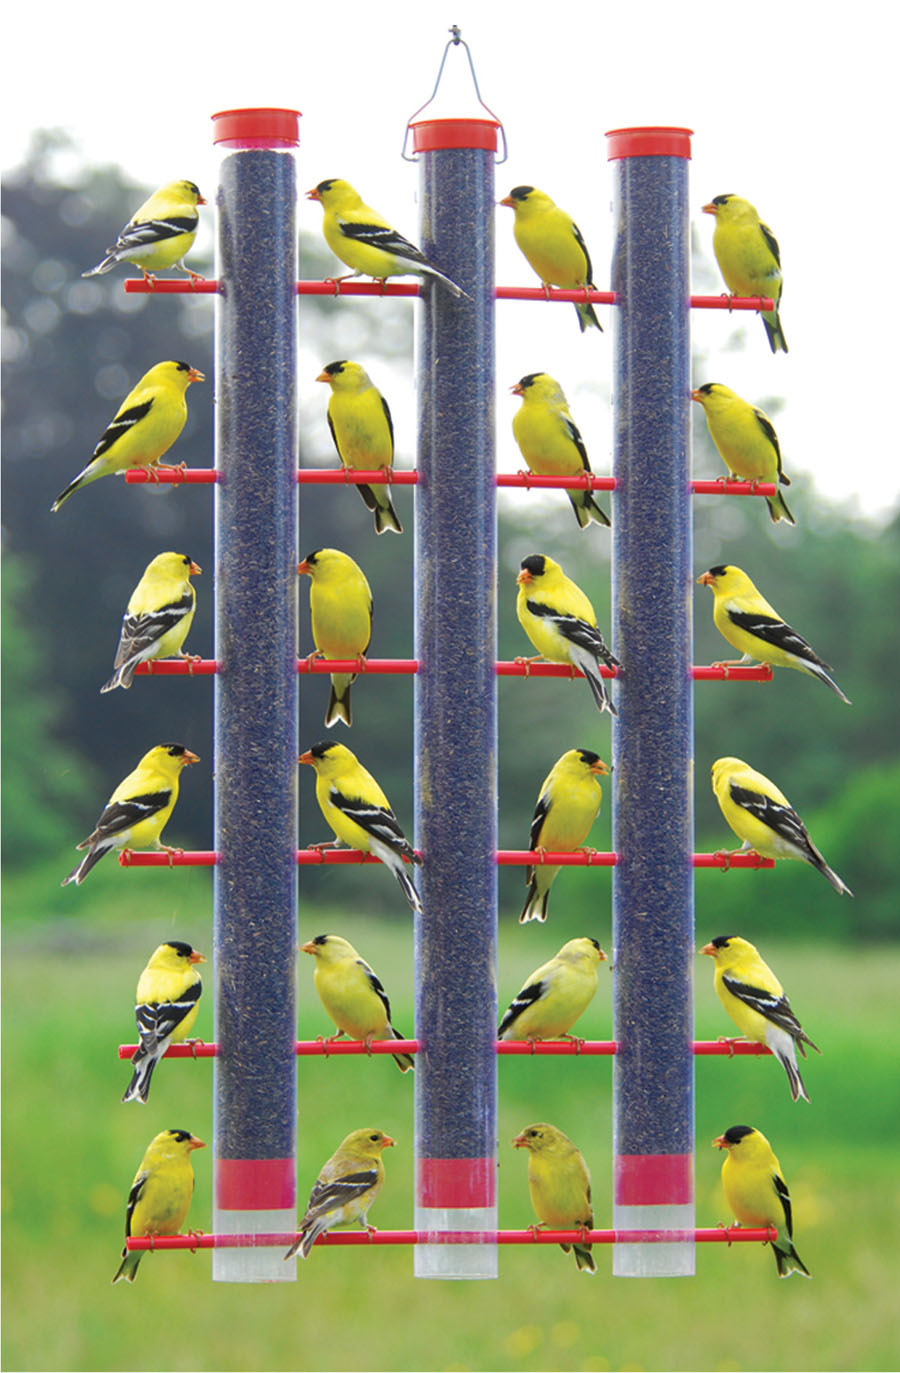 feed picture cling finch at feeders finchthistlebirdfeeders thistle of finches forever n clingnfeed feeder for wild birds bird and sak